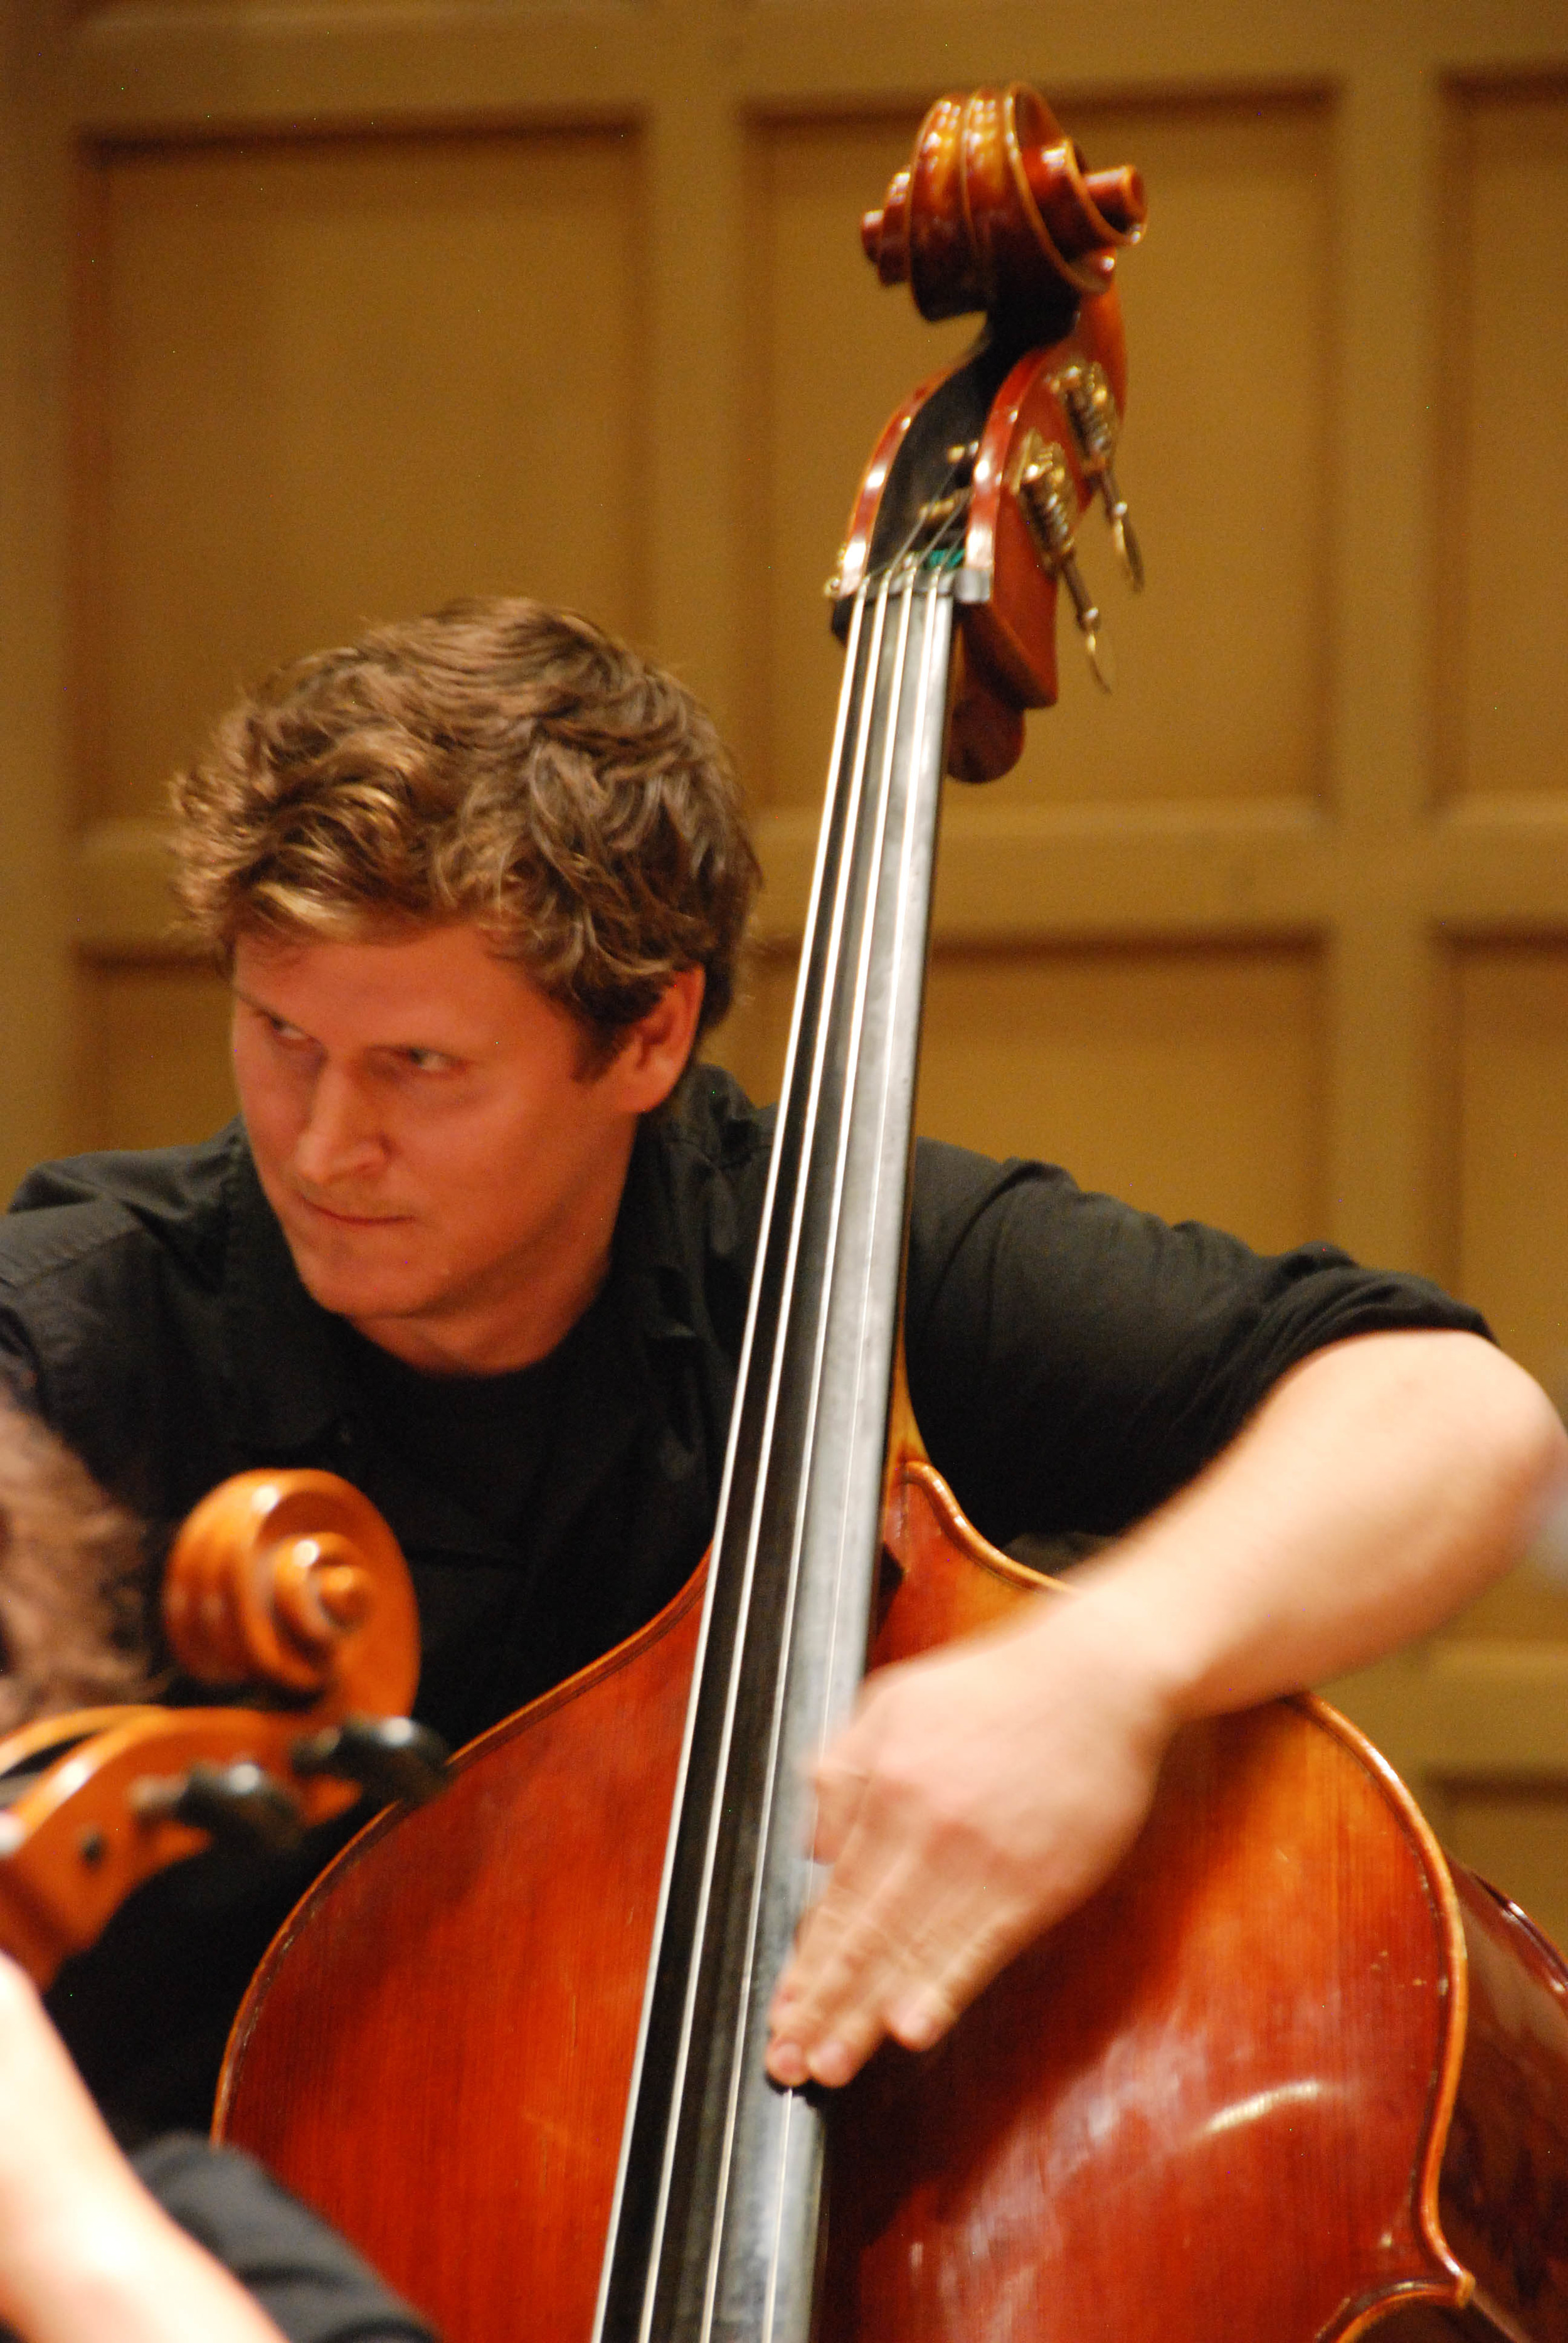 Bassist Ross Gilliland, September 19, 2014 at Chapel Performance Space